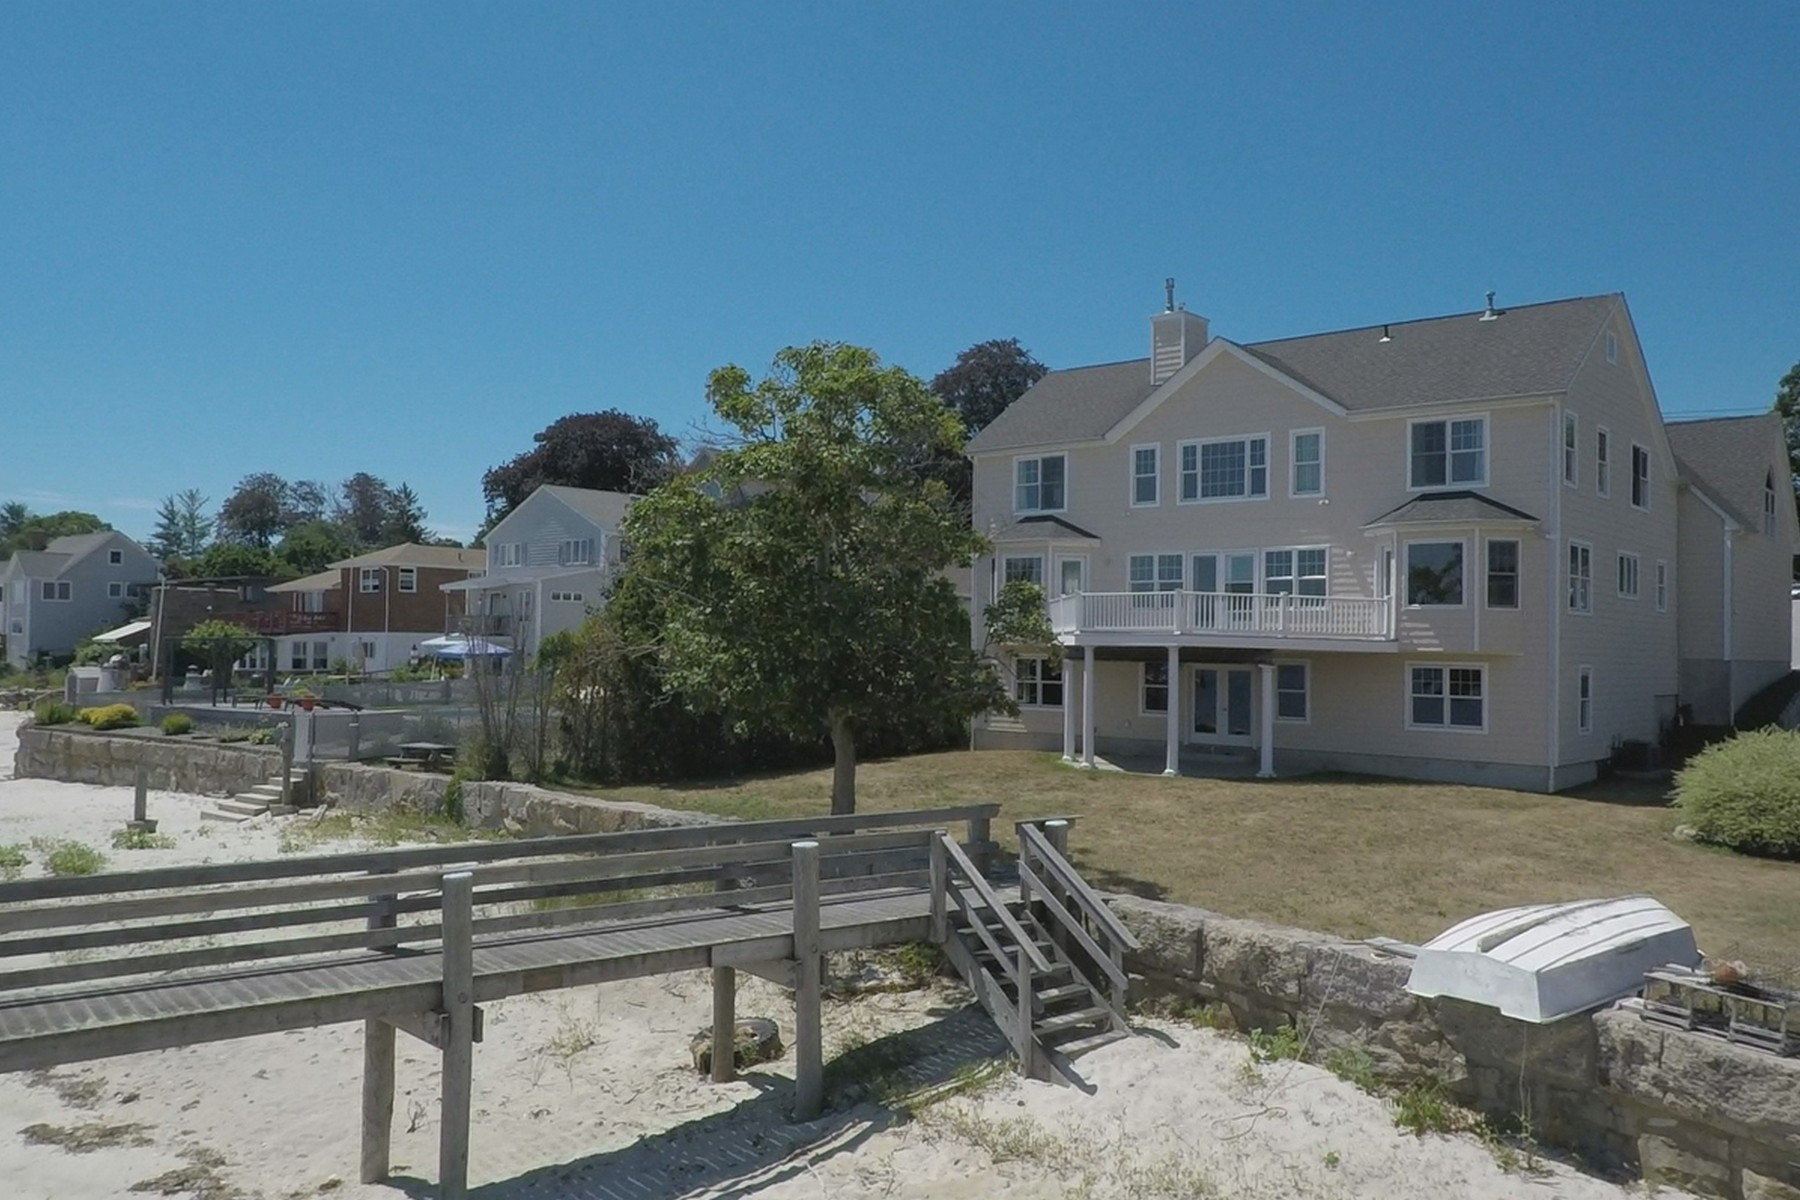 Single Family Home for Sale at Majestic Waterfront Home 490 Pequot Avenue, (waterfront) New London, Connecticut, 06320 United States